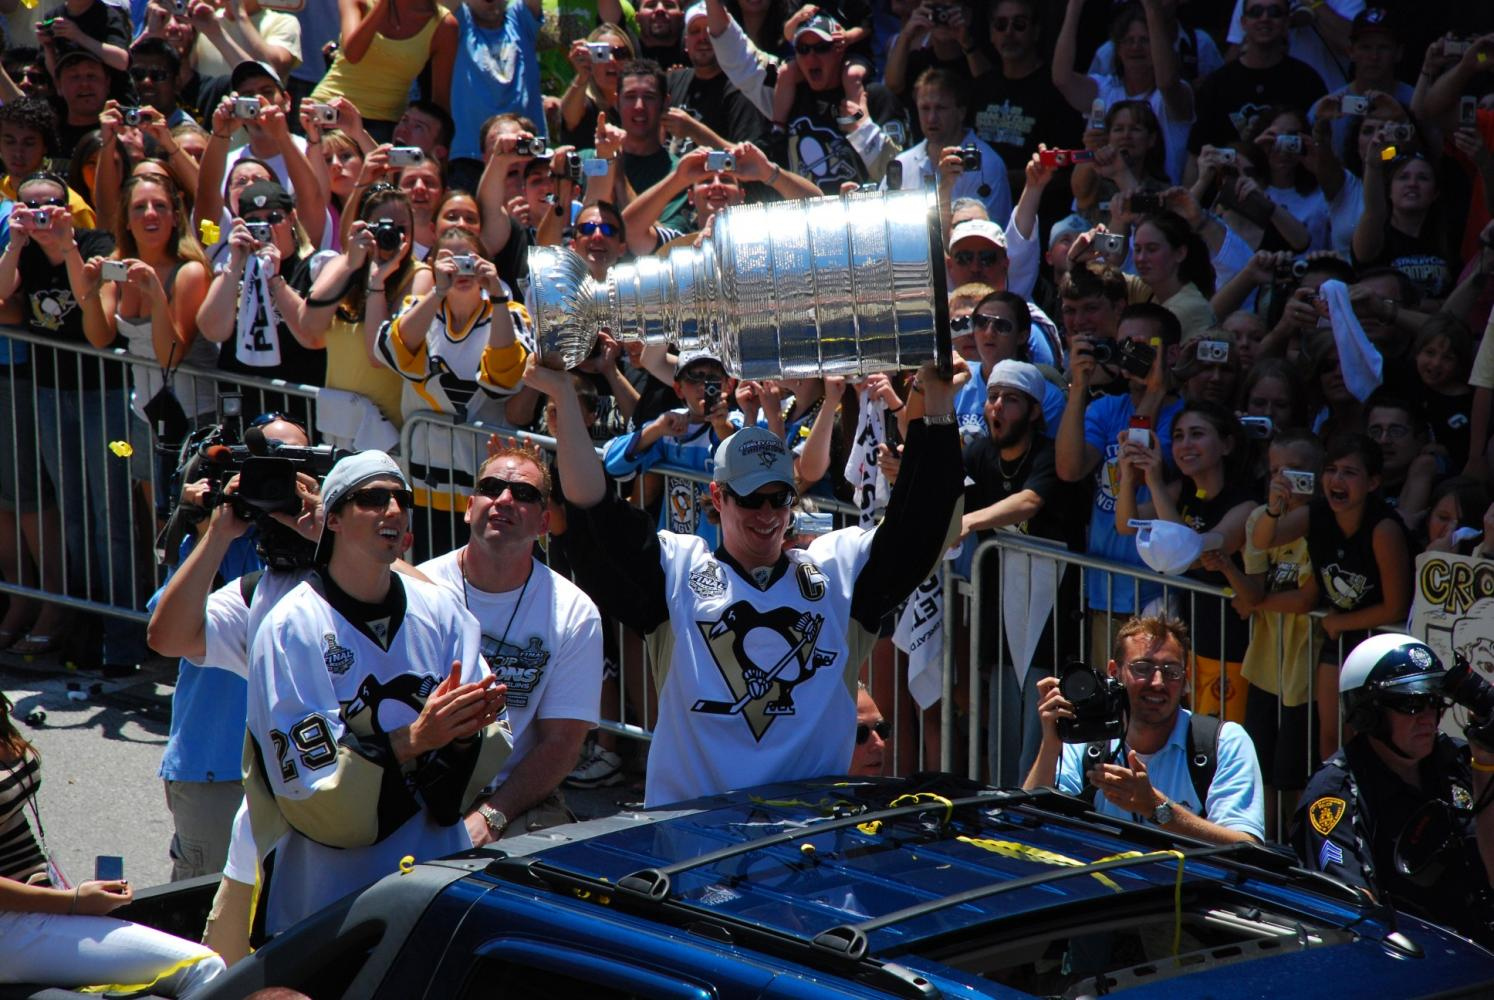 Celebrating during a parade during their last Stanley Cup win, Sidney Crosby holds the Stanley Cup above his head. The Penguins have won the cup in back-to-back years, and this is Crosby's third time hoisting it in celebration.